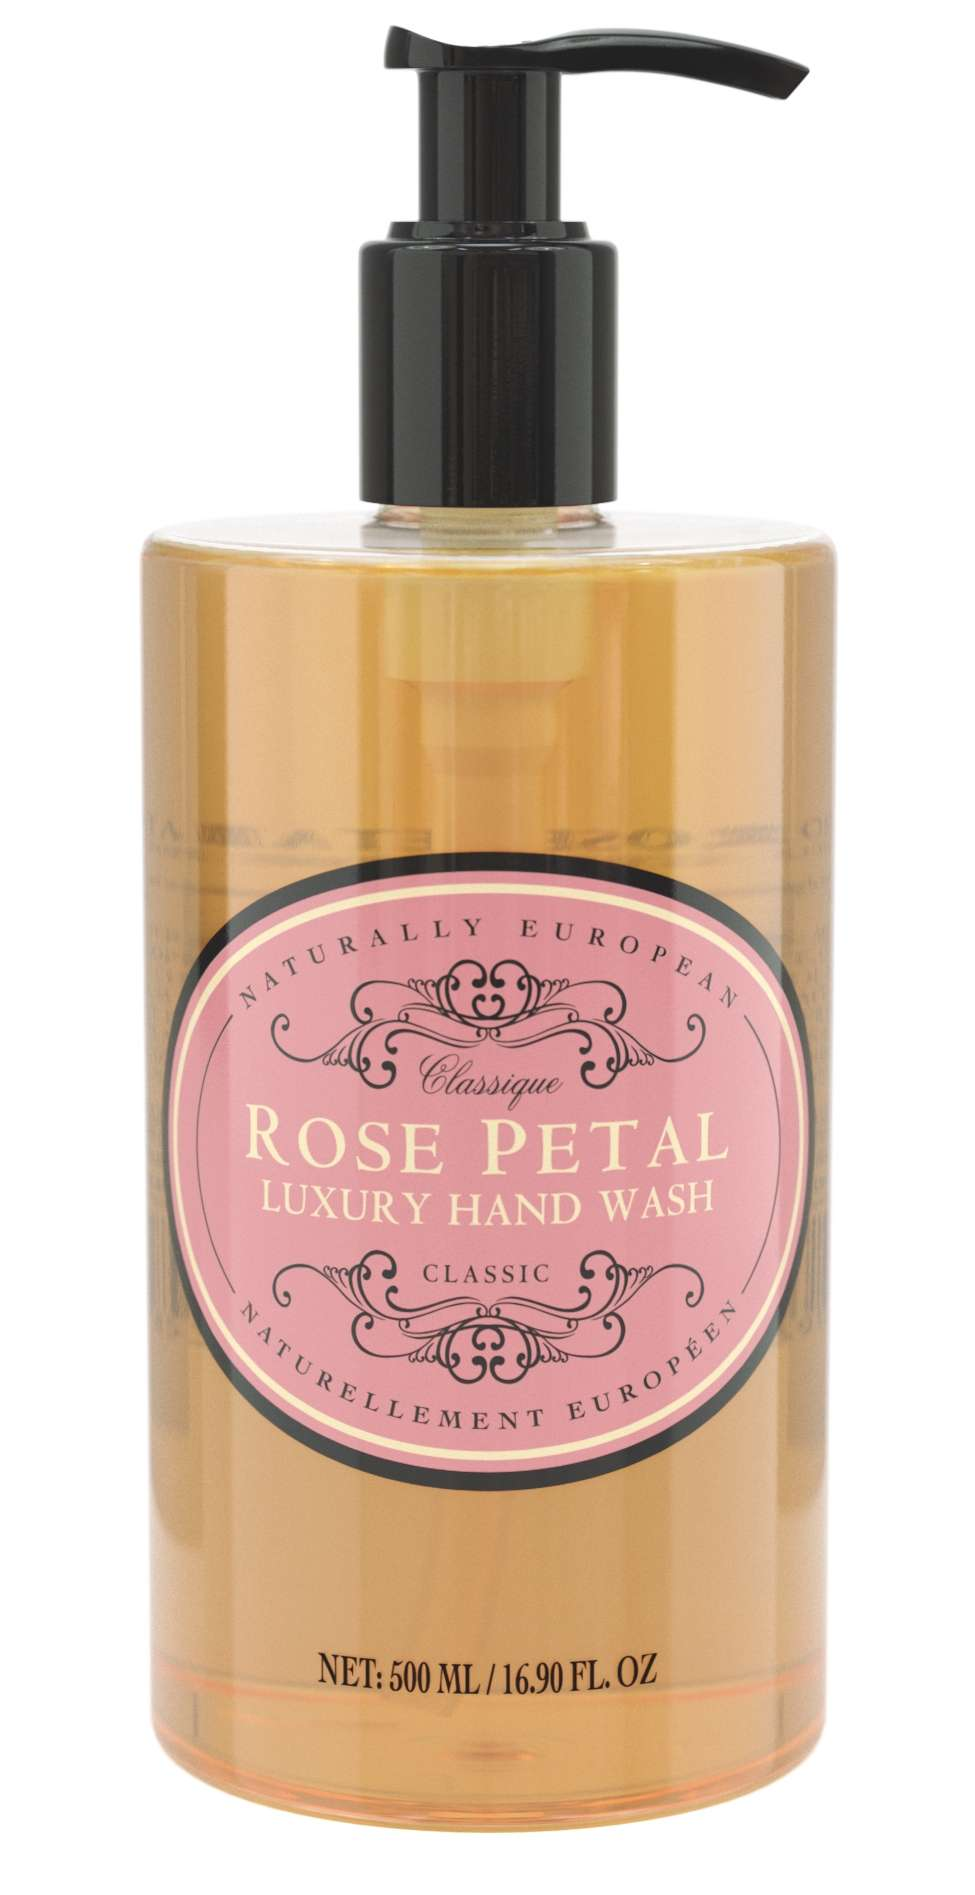 Naturally European Rose Petal hand wash